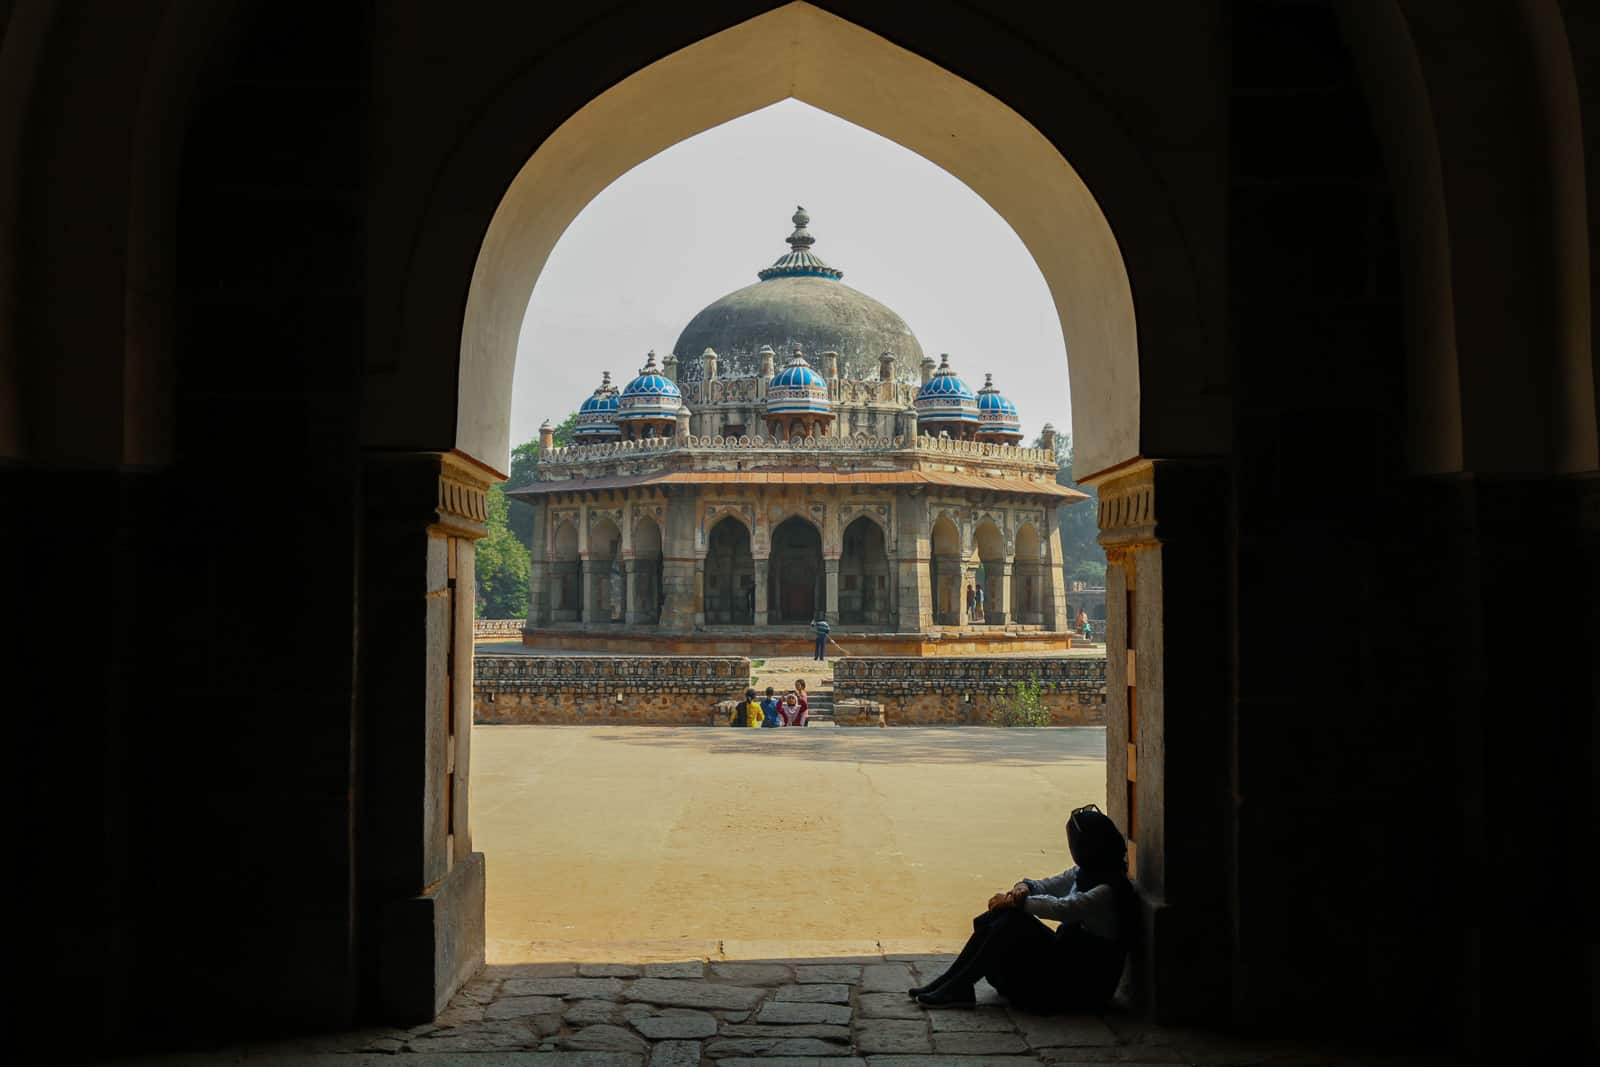 Interview with a tour leader and female travel blogger from Iran - Matin at Humayun's tomb in Delhi, India